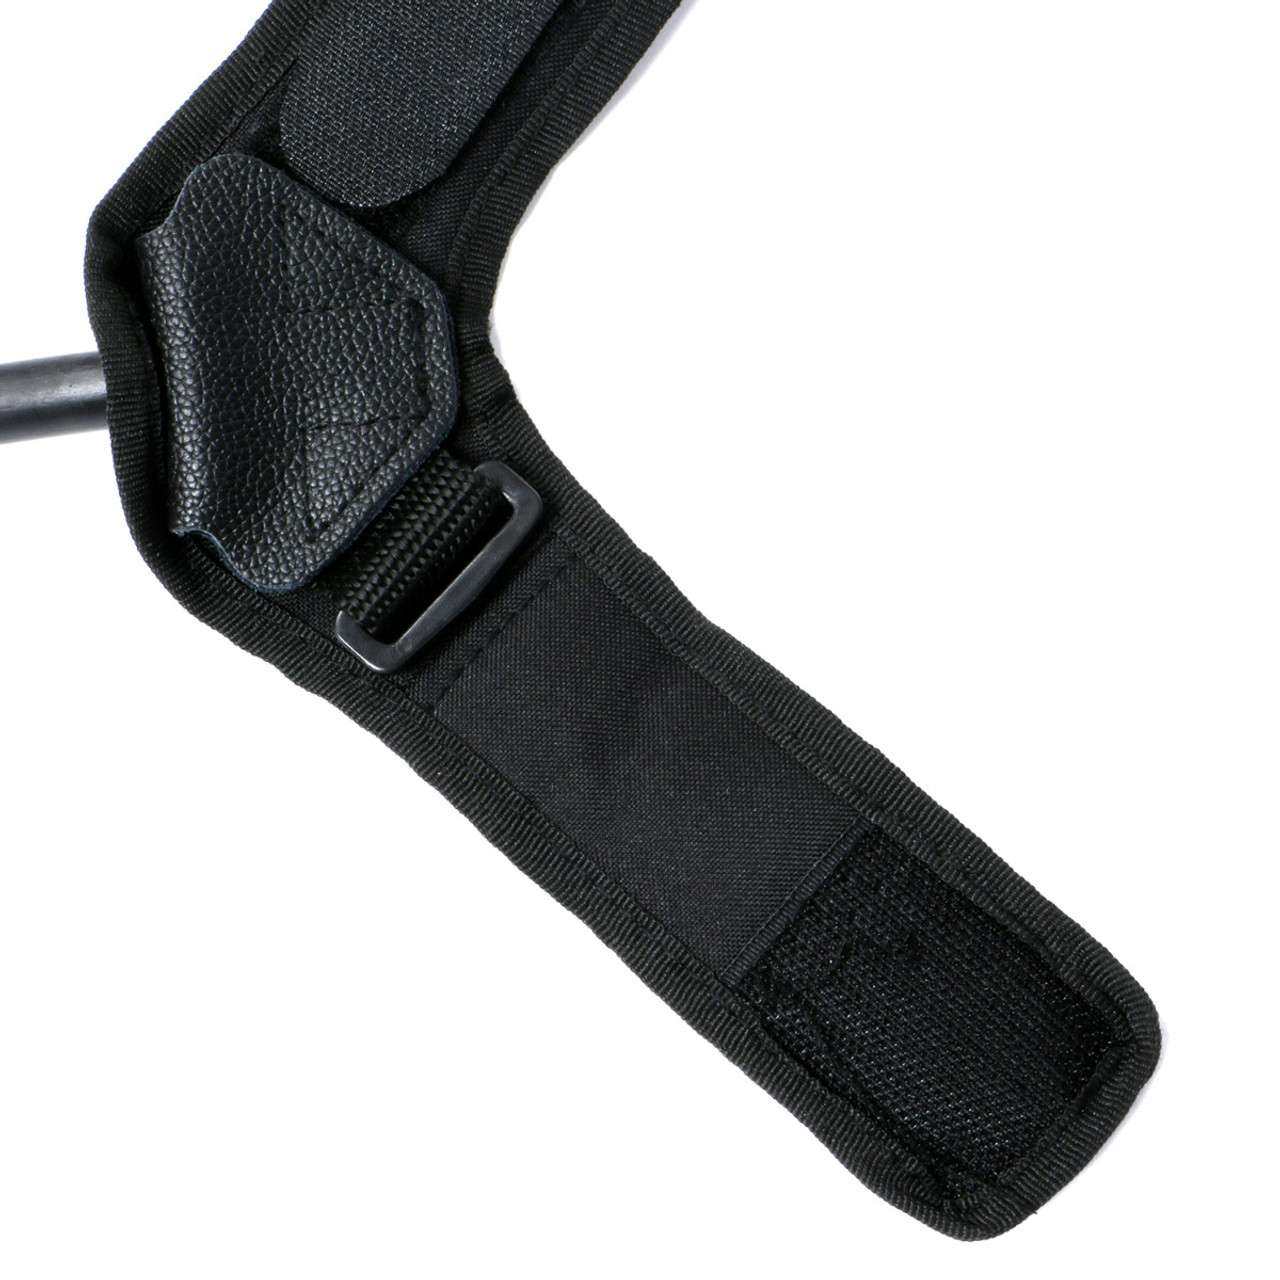 Bow Release- Wrist Strap Release, Left and Right Handed, by U.S. Solid